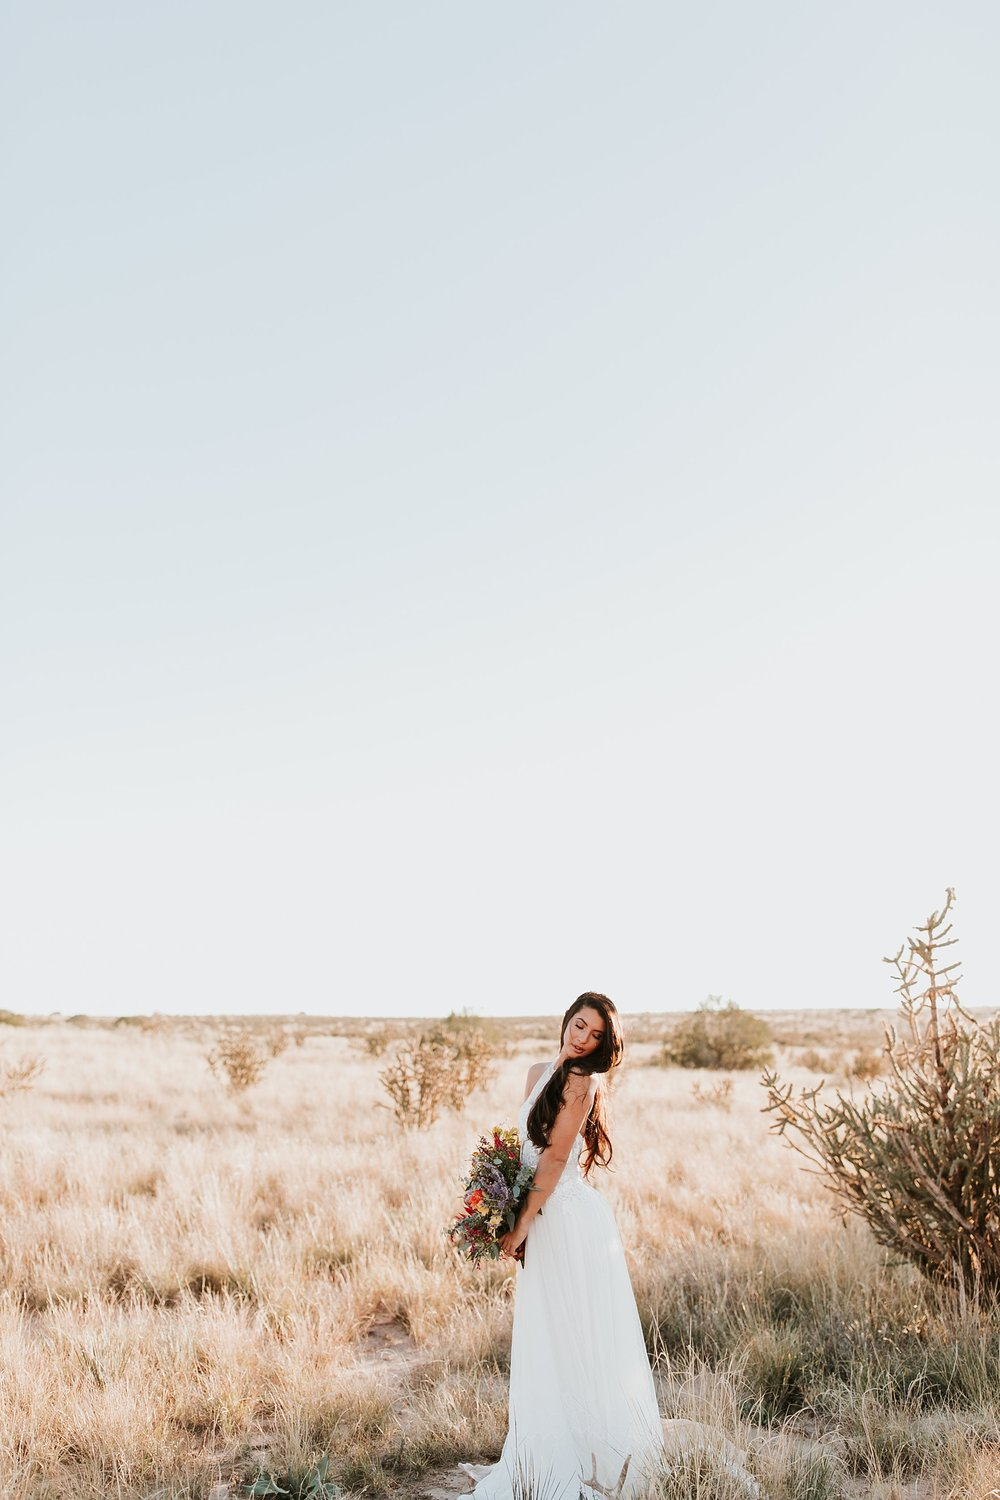 Alicia+lucia+photography+-+albuquerque+wedding+photographer+-+santa+fe+wedding+photography+-+new+mexico+wedding+photographer+-+new+mexico+bride+-+southwest+bridal+session+-+desert+bridal+session+-+santa+fe+bride+-+albuquerque+bride_0018.jpg